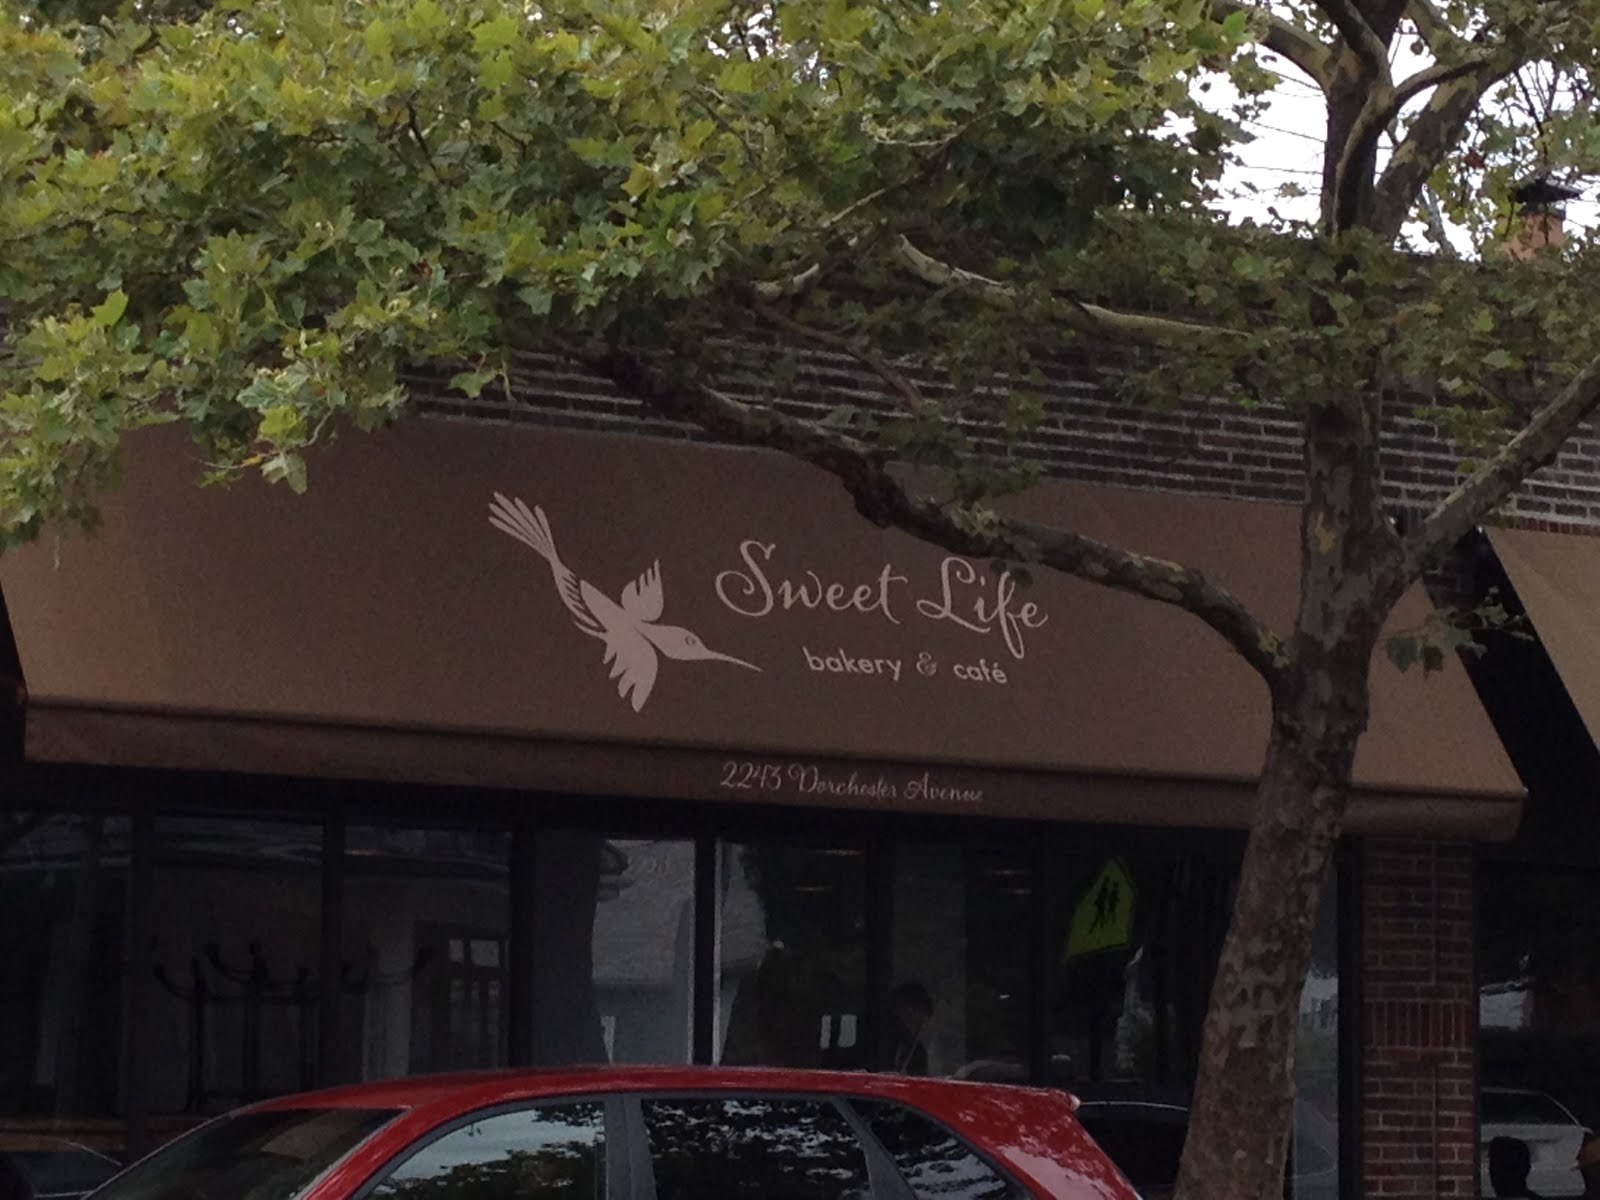 Lower Dot: Sweet Life Bakery and Café